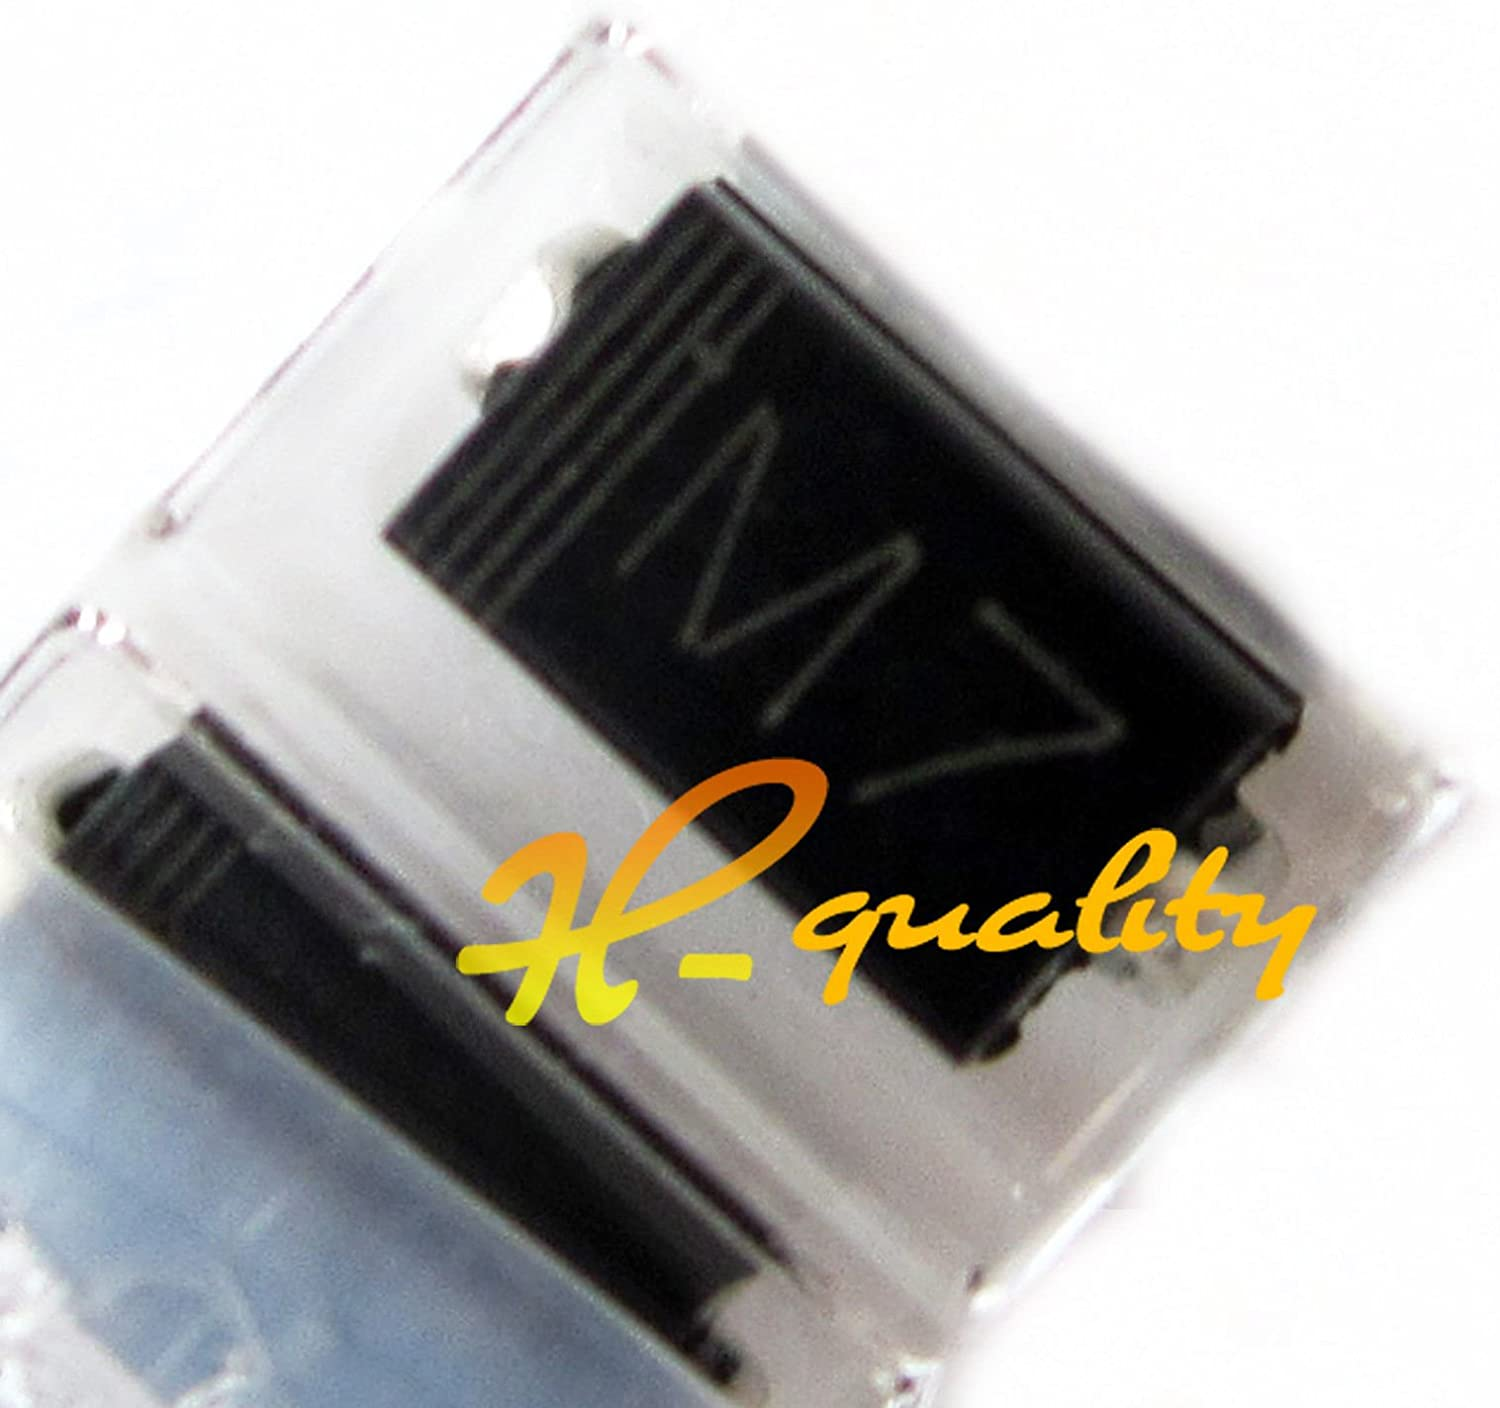 100PCS SMD 1N4007 Diode 1A 1000V IN4007 M7 DO-214AC Top